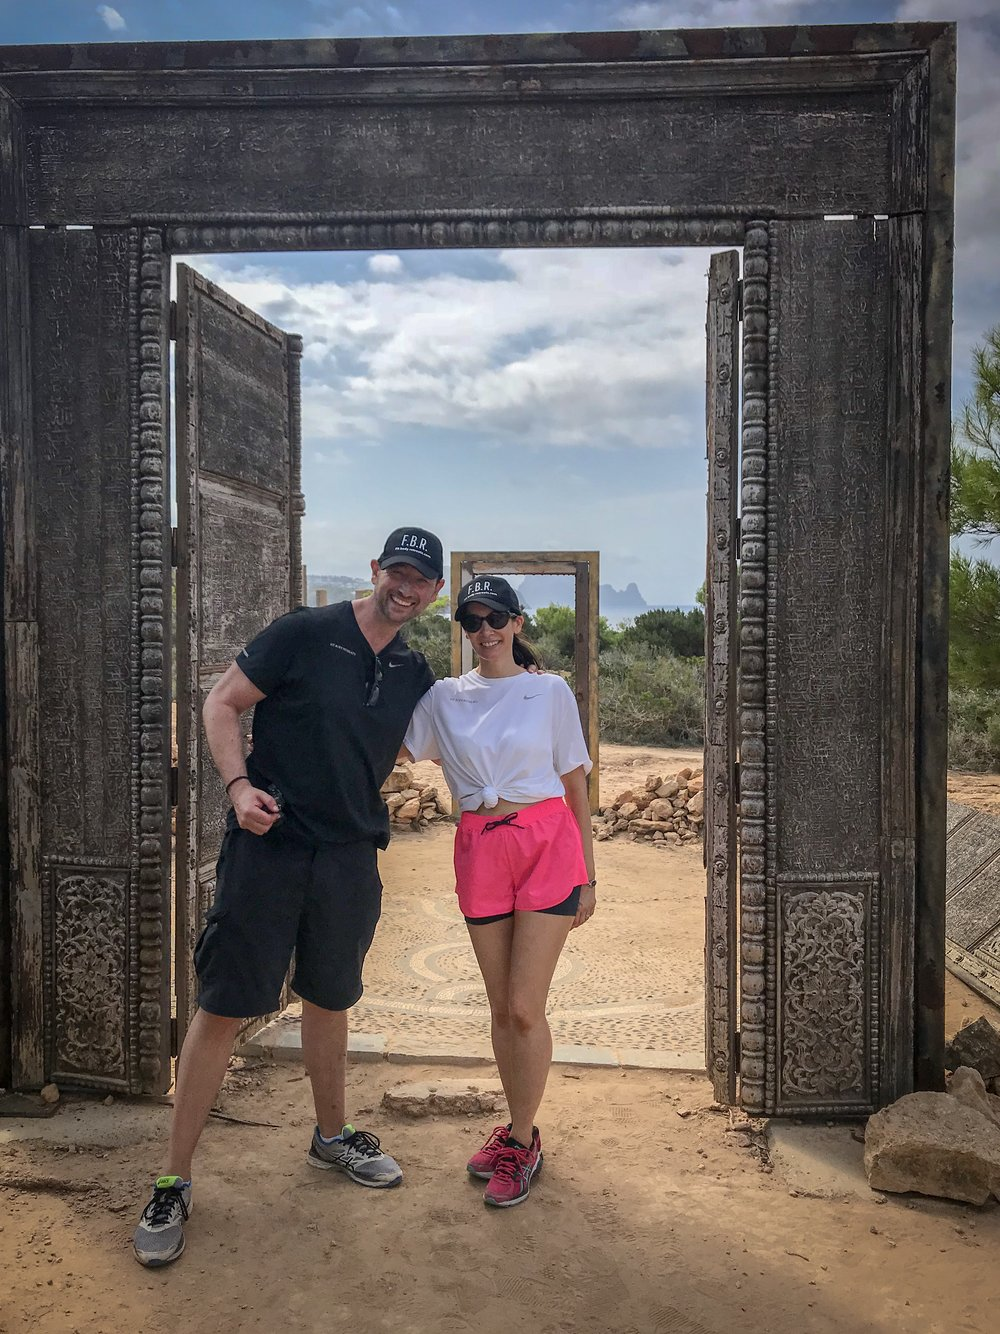 About Fit Body Retreats - Fit Body Retreats is a family run business founded by personal trainers Andrew and Victoria Mitchison along with their son Joseph.